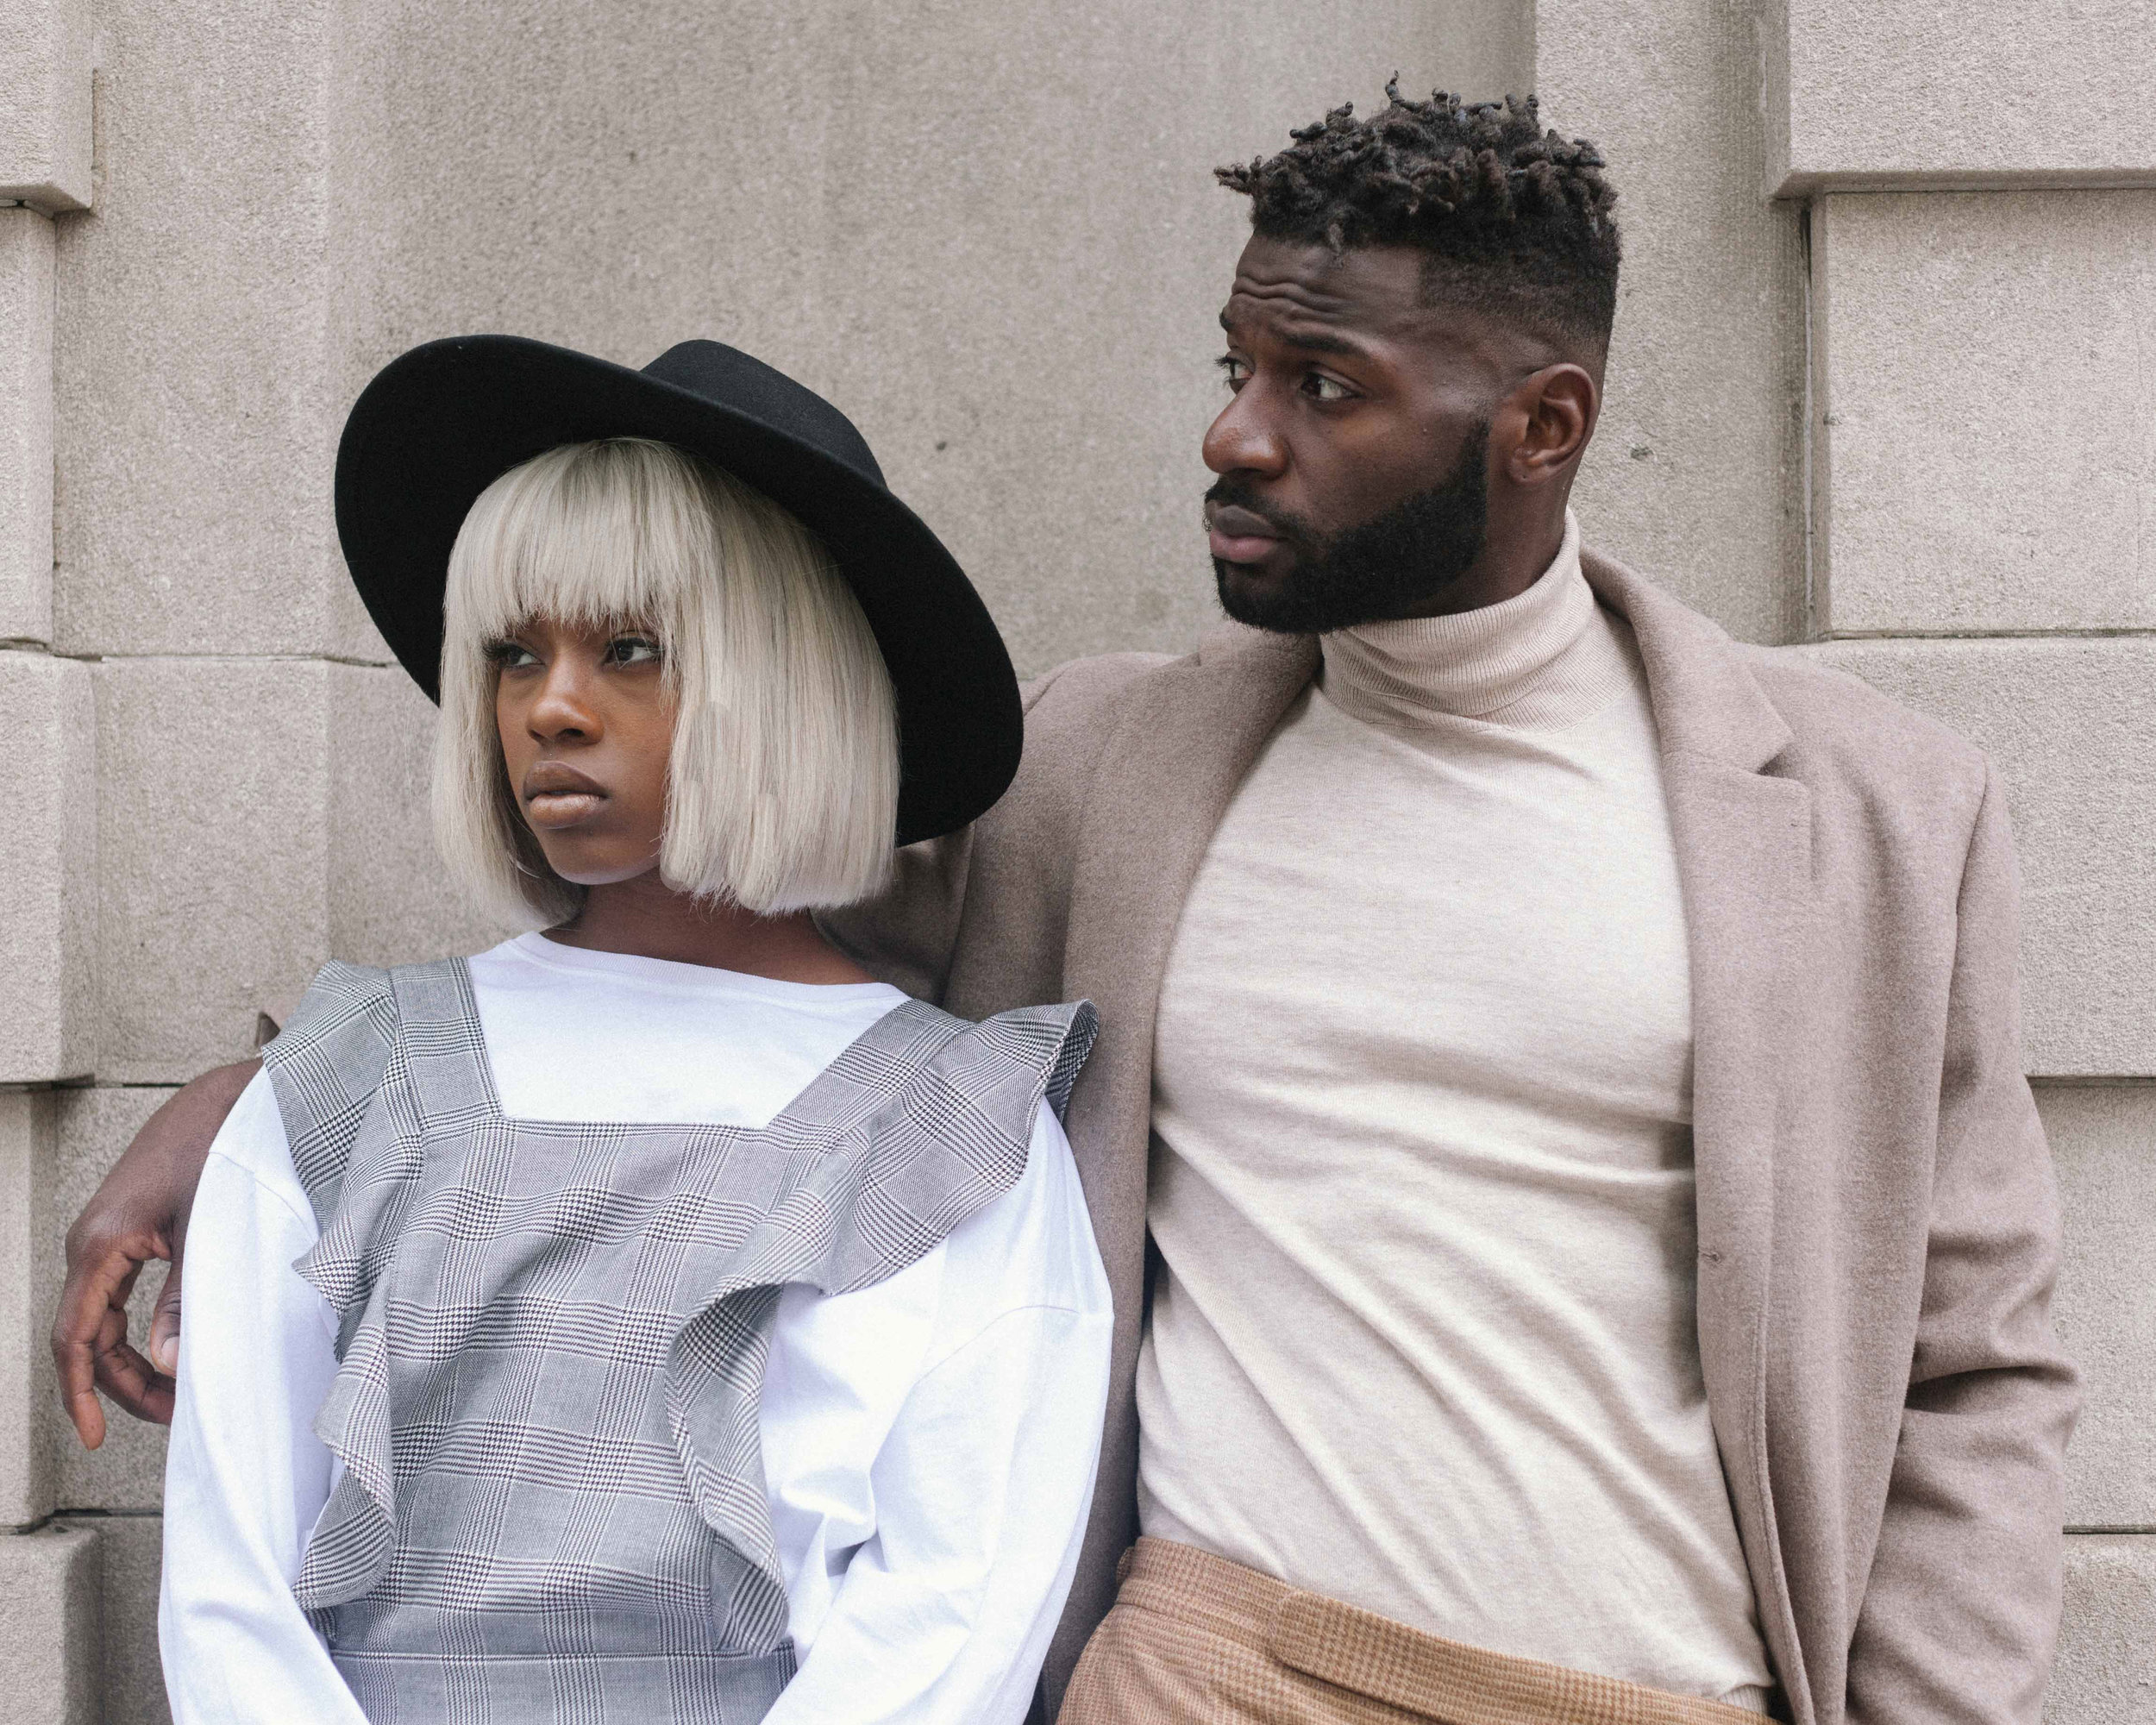 black man + woman model. portrait photography in new york city captured by jarrod anderson.